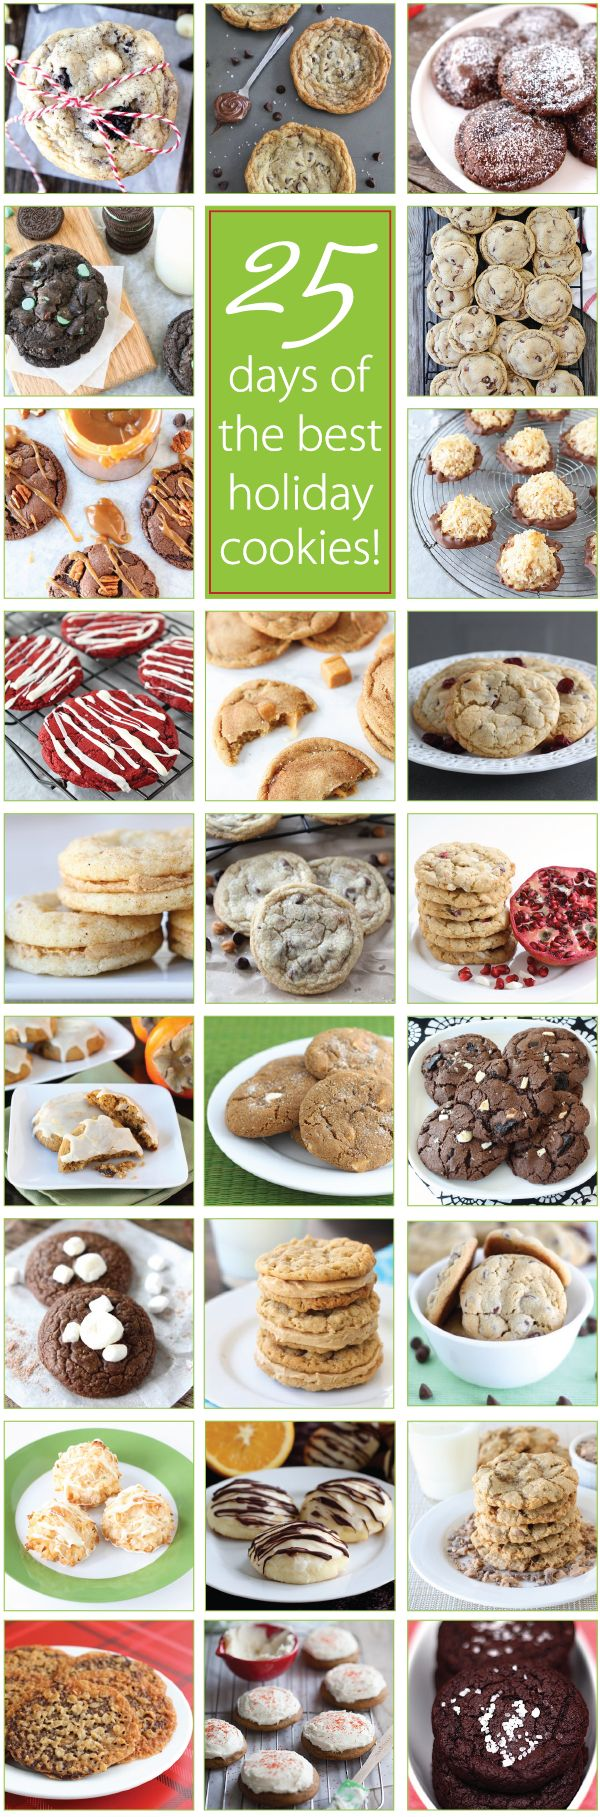 25 Days of the BEST Holiday Cookie Recipes on twopeasandtheirpod.com You will want to make ALL of these cookies!